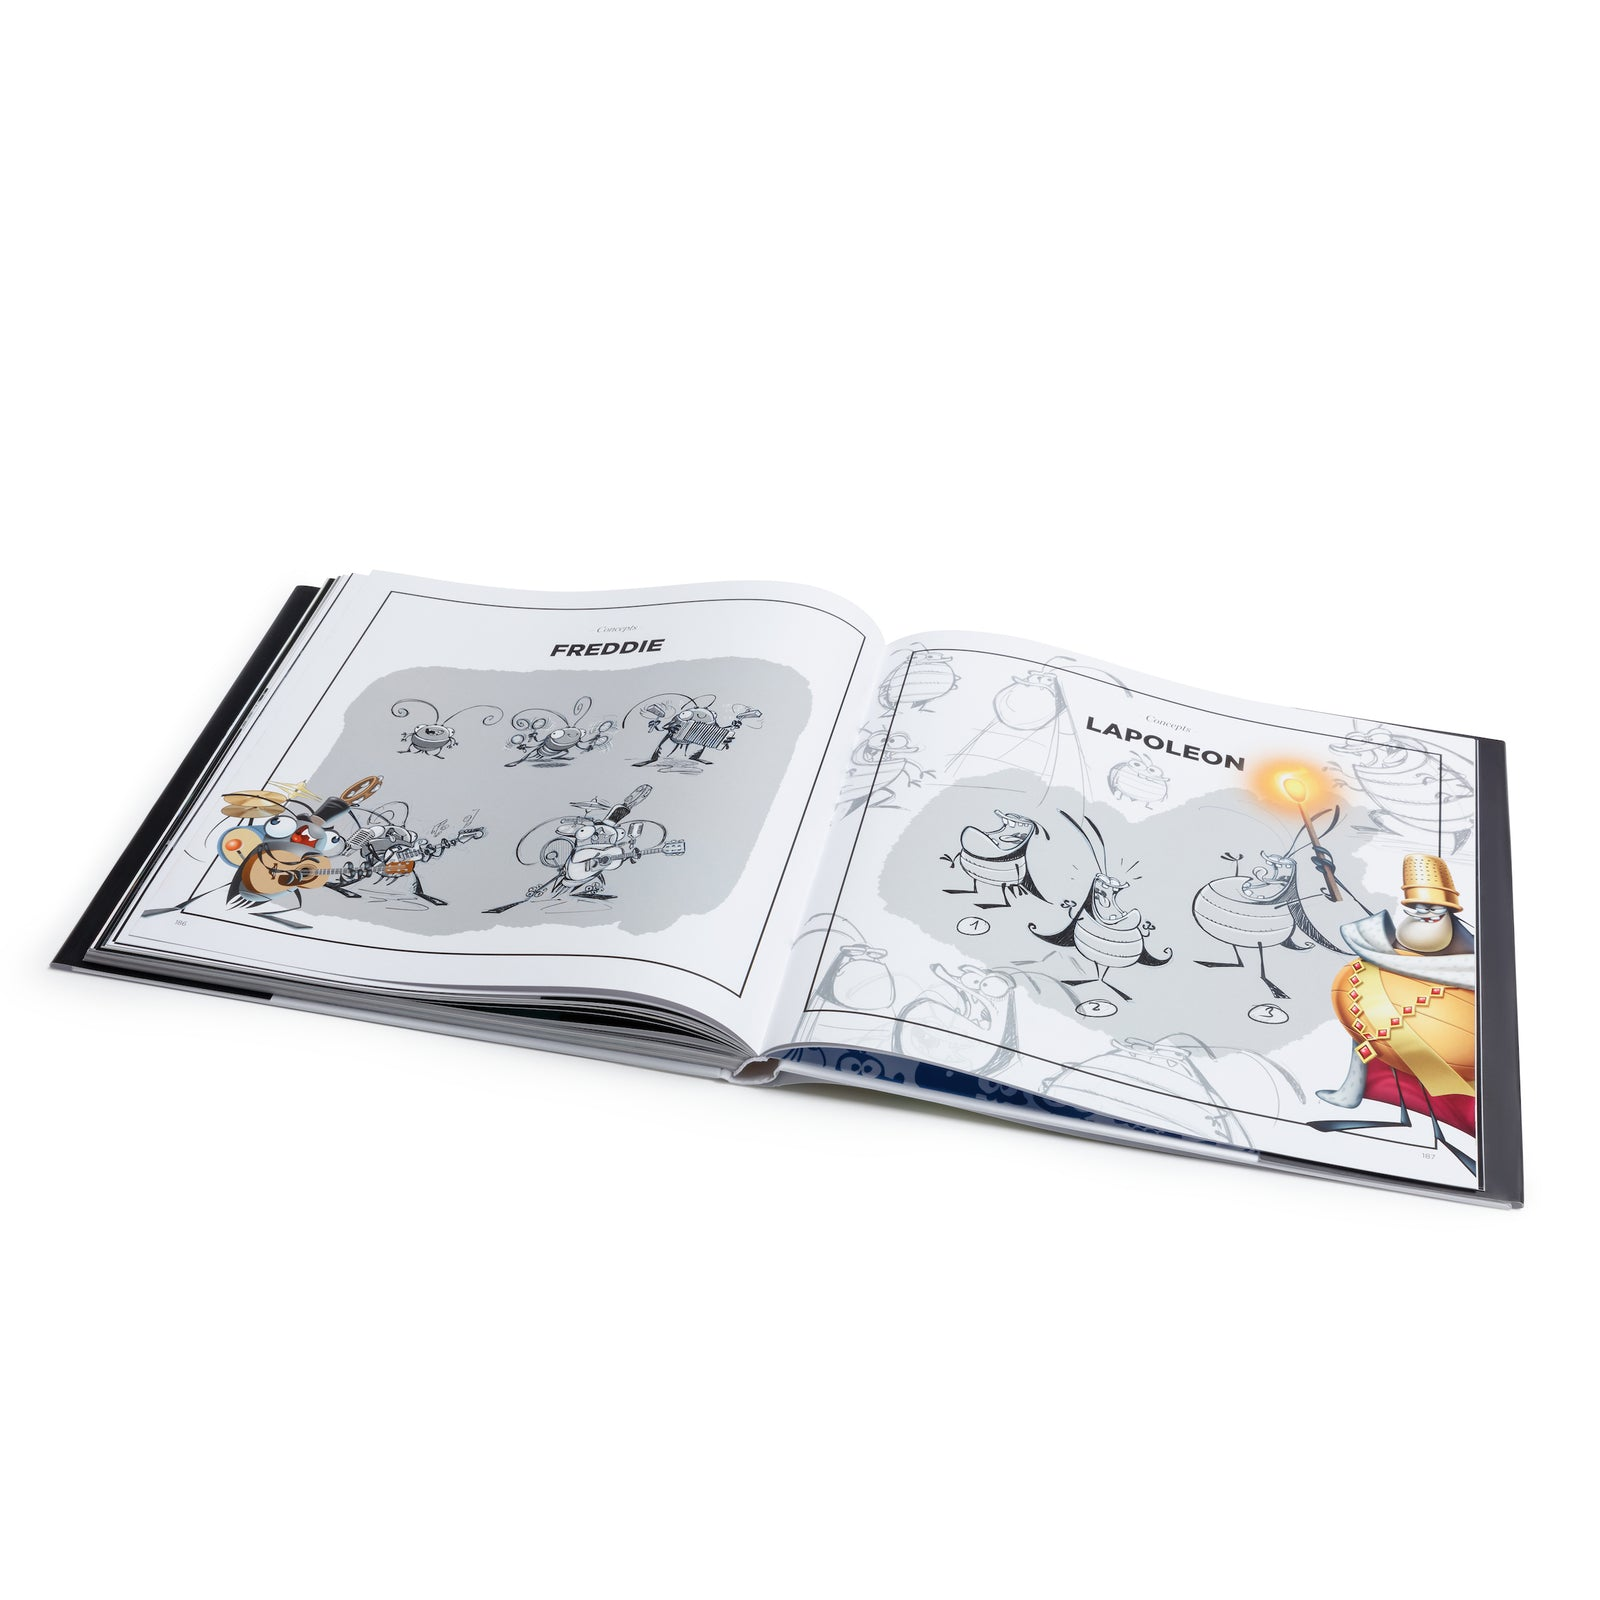 Best Fiends Art Book